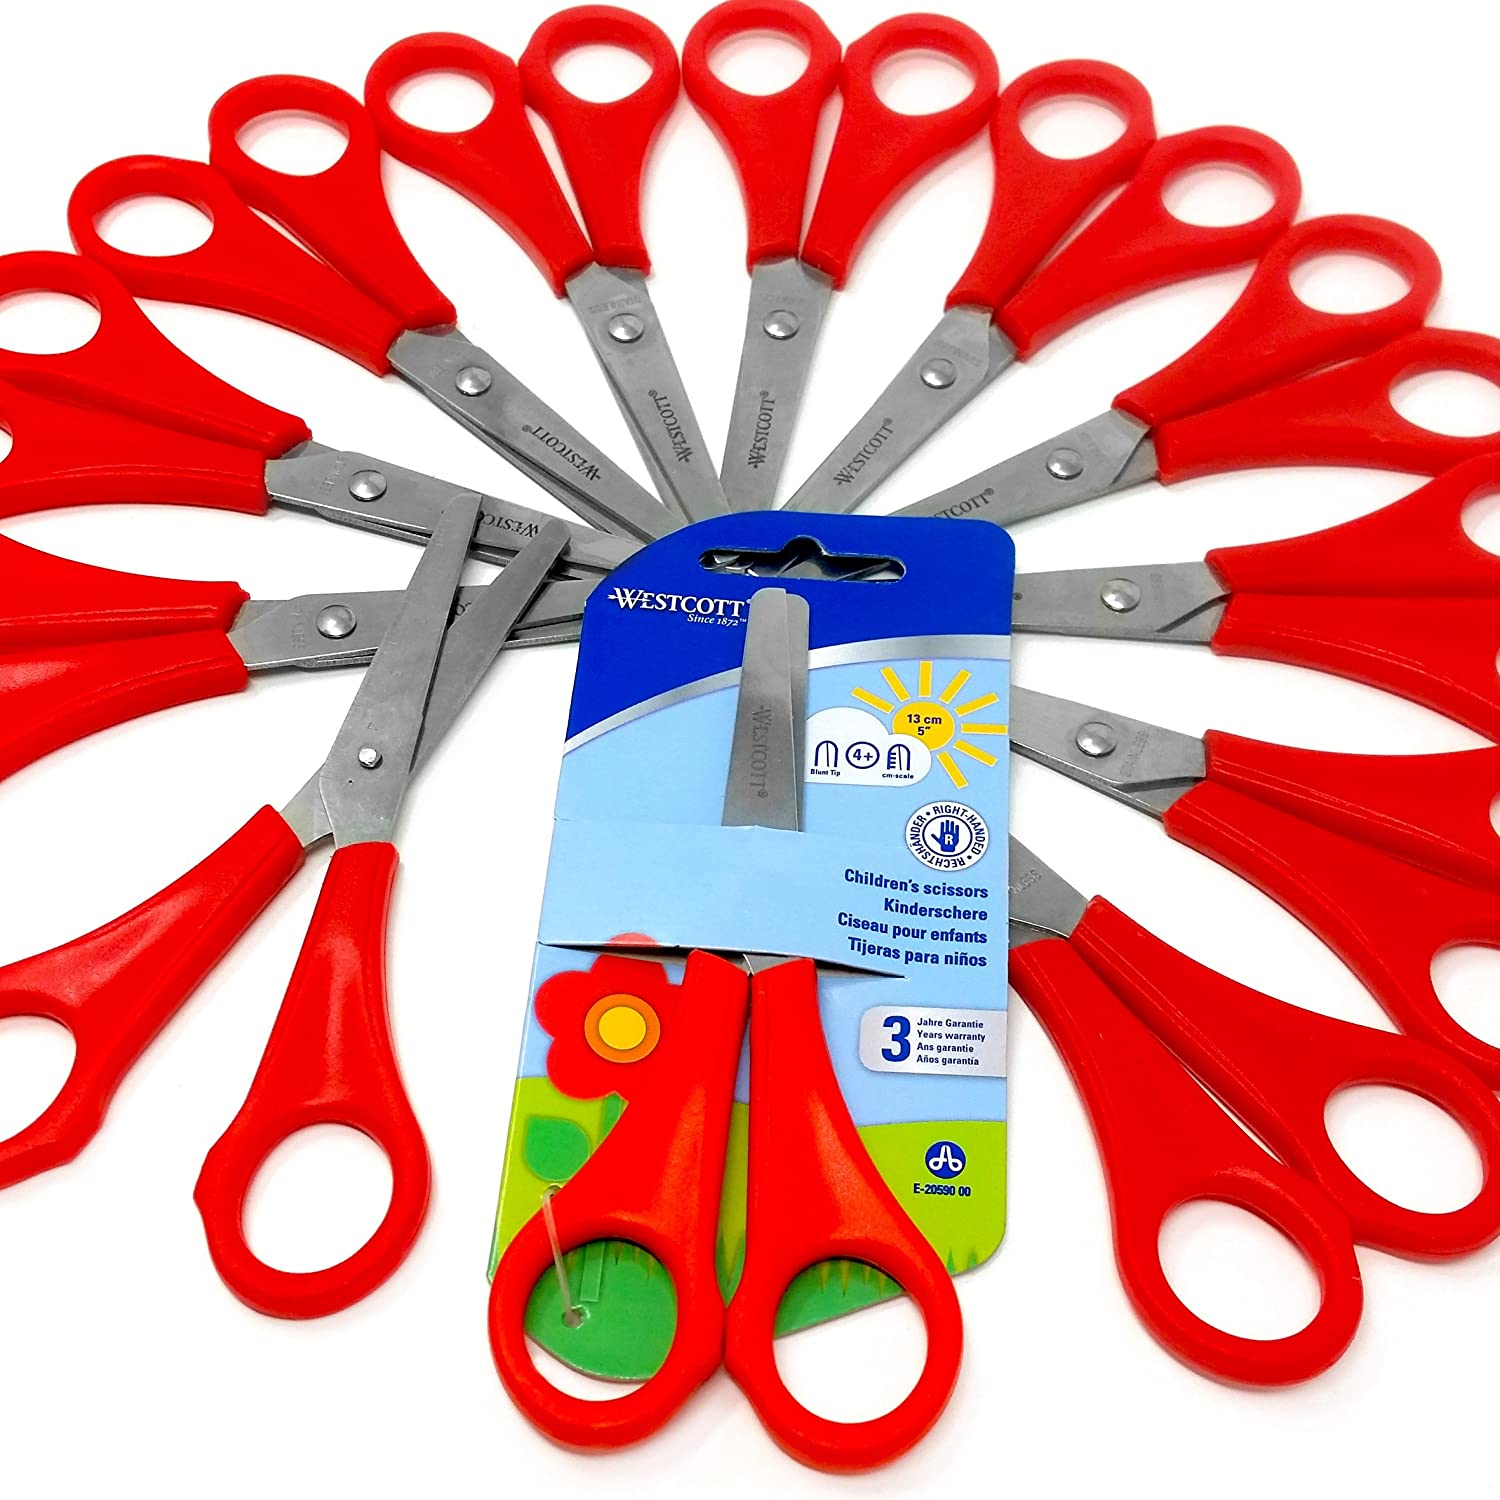 12 x Children's / Kid's Red Right Handed Scissors with Ruler Edge - Westcott Branded Blister Pack - [E-20590 00]